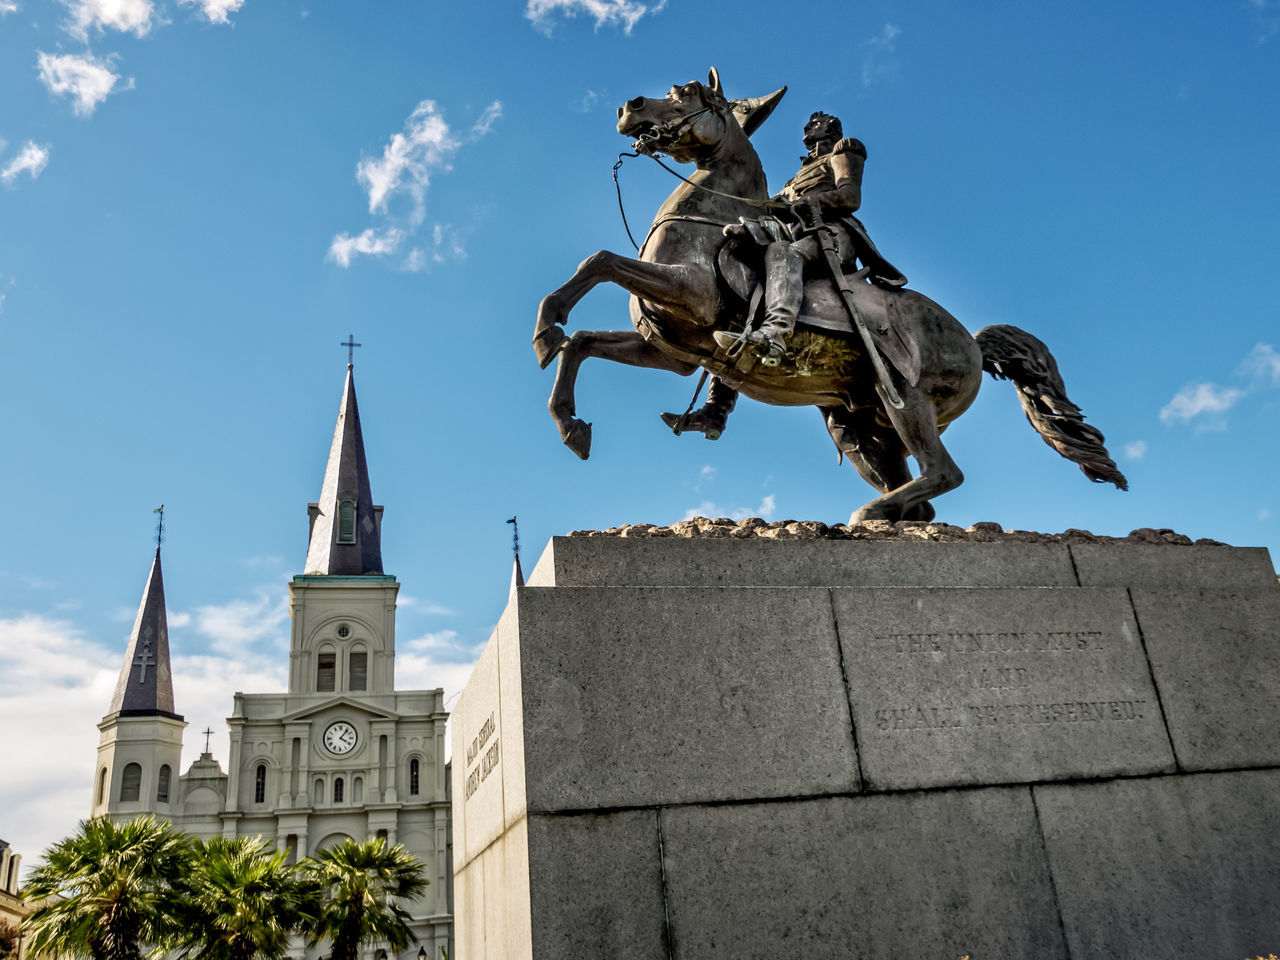 Statue of Andrew Jackson on a Horse in front of St. Louis Cathedral 2 Animal Architecture Building Exterior Built Structure City City Gate Cityscape Day French Quarter Jackson Square New Orleans, LA No People Outdoors Place Of Worship Sculpture St. Louis Cathedral Statue Travel Travel Destinations